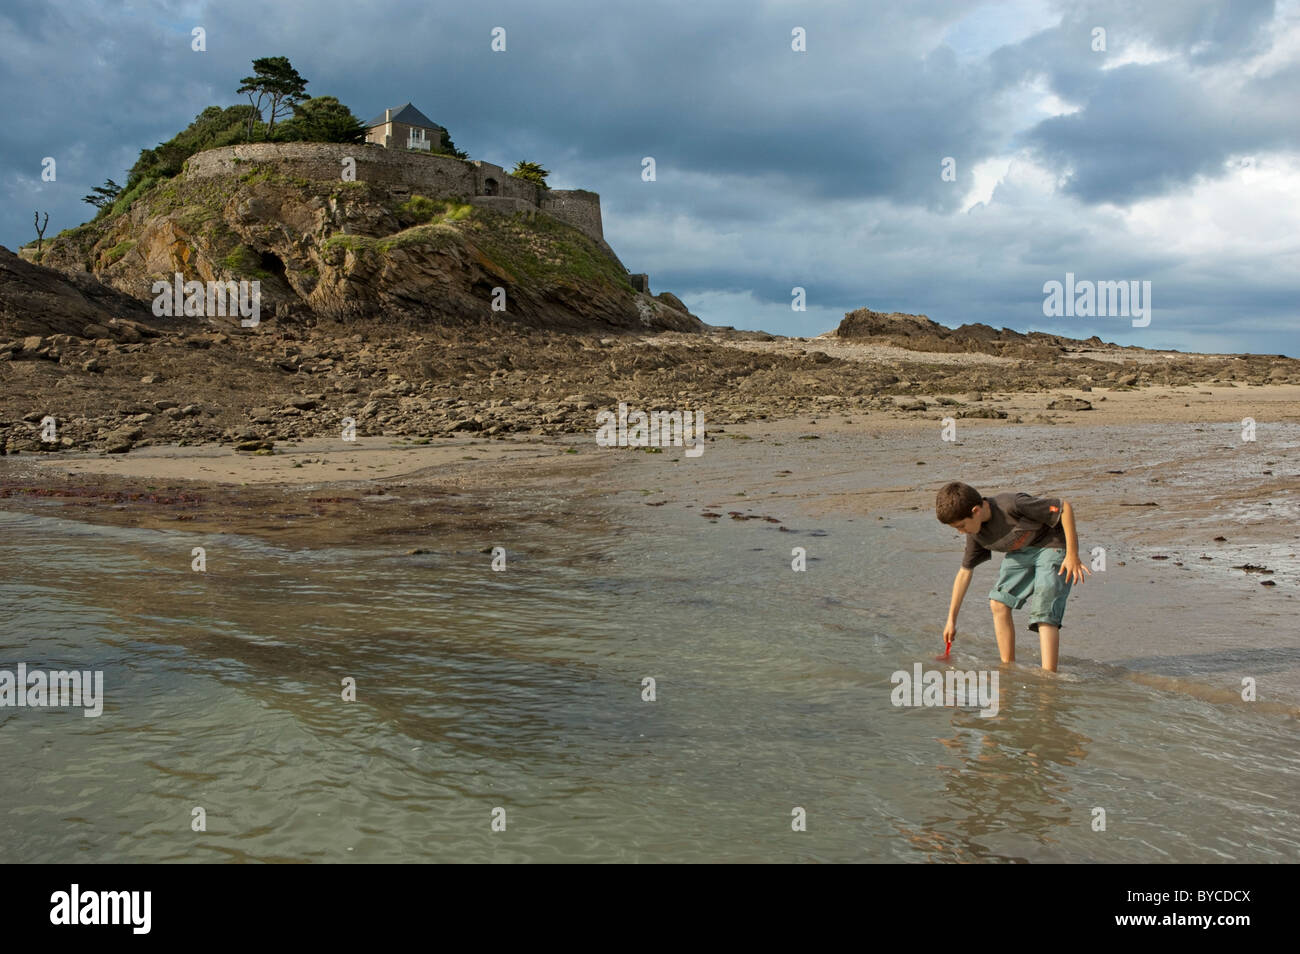 Boy playing in the sea at the water's edgenear the house on the rock called Anse du Guesclin in Brittany, France. - Stock Image